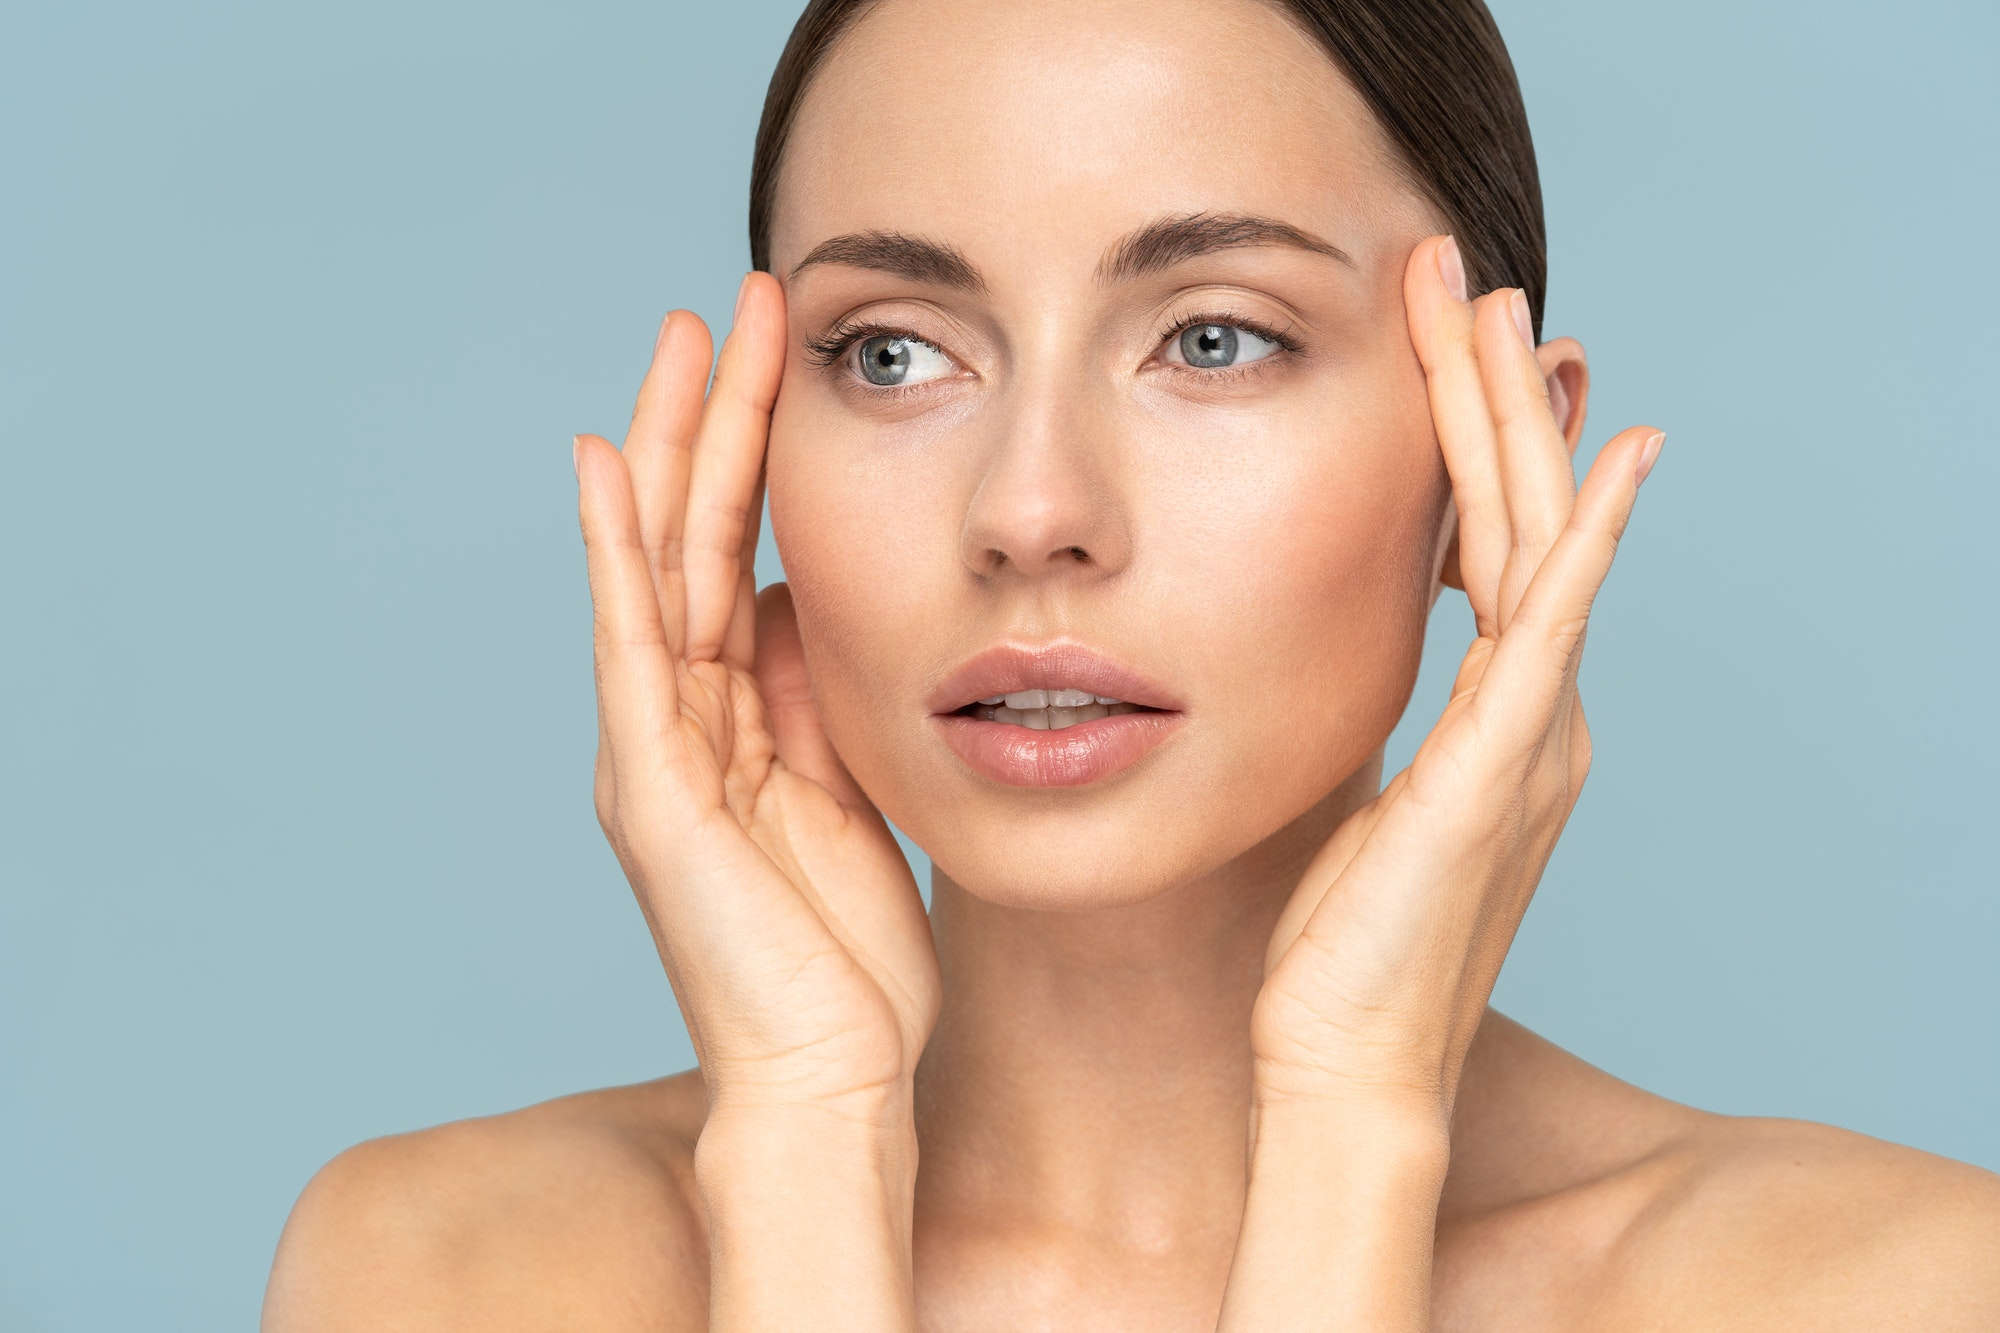 woman with natural makeup, combed hair, touching well-groomed pure skin on face. Beauty, facelift